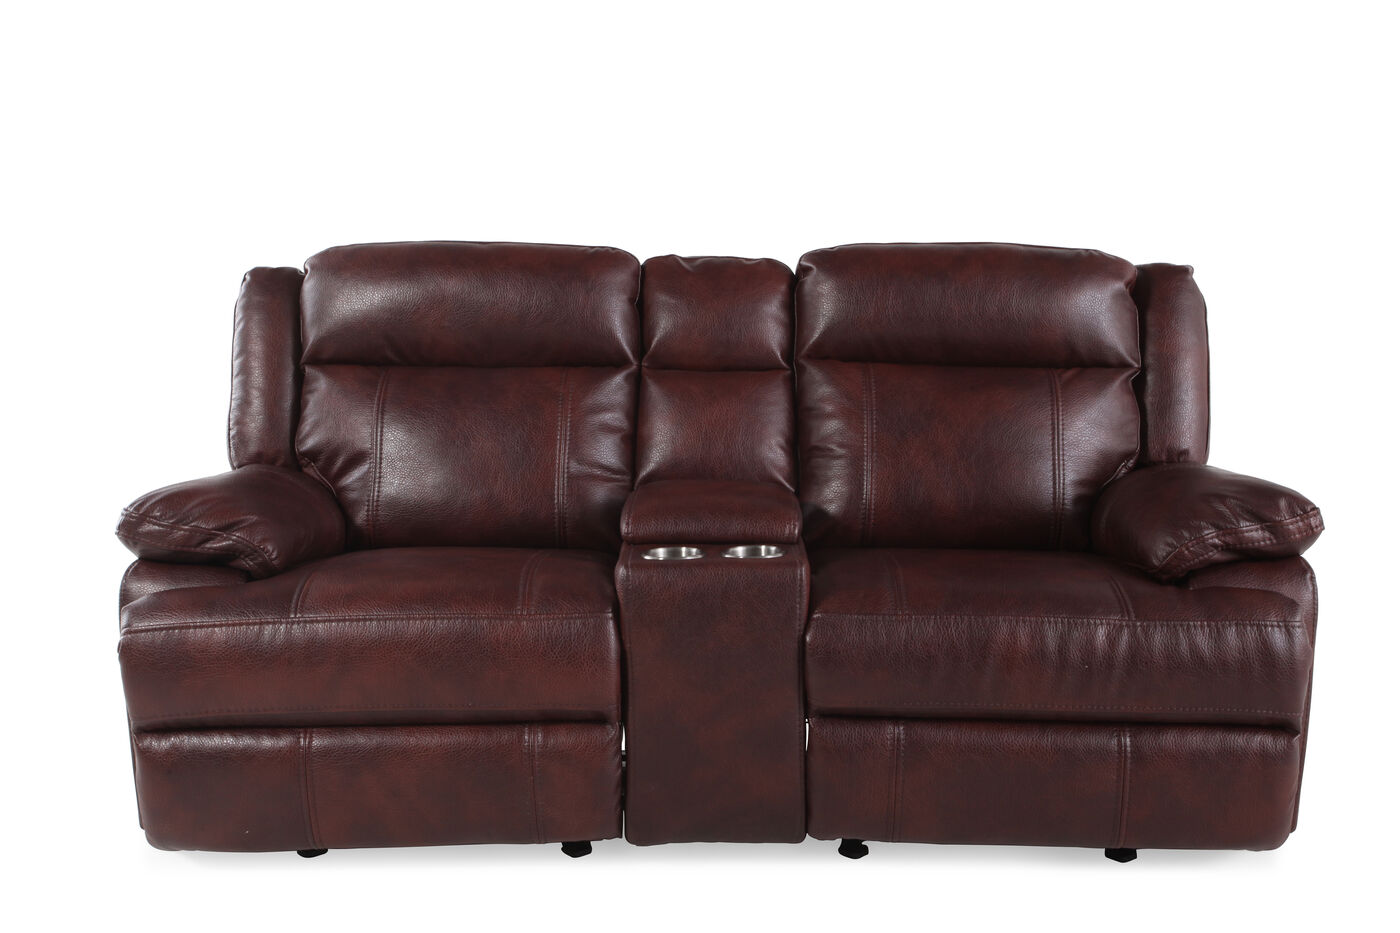 Reclining Contemporary 79 Loveseat Glider With Console In Dark Burgundy Mathis Brothers Furniture